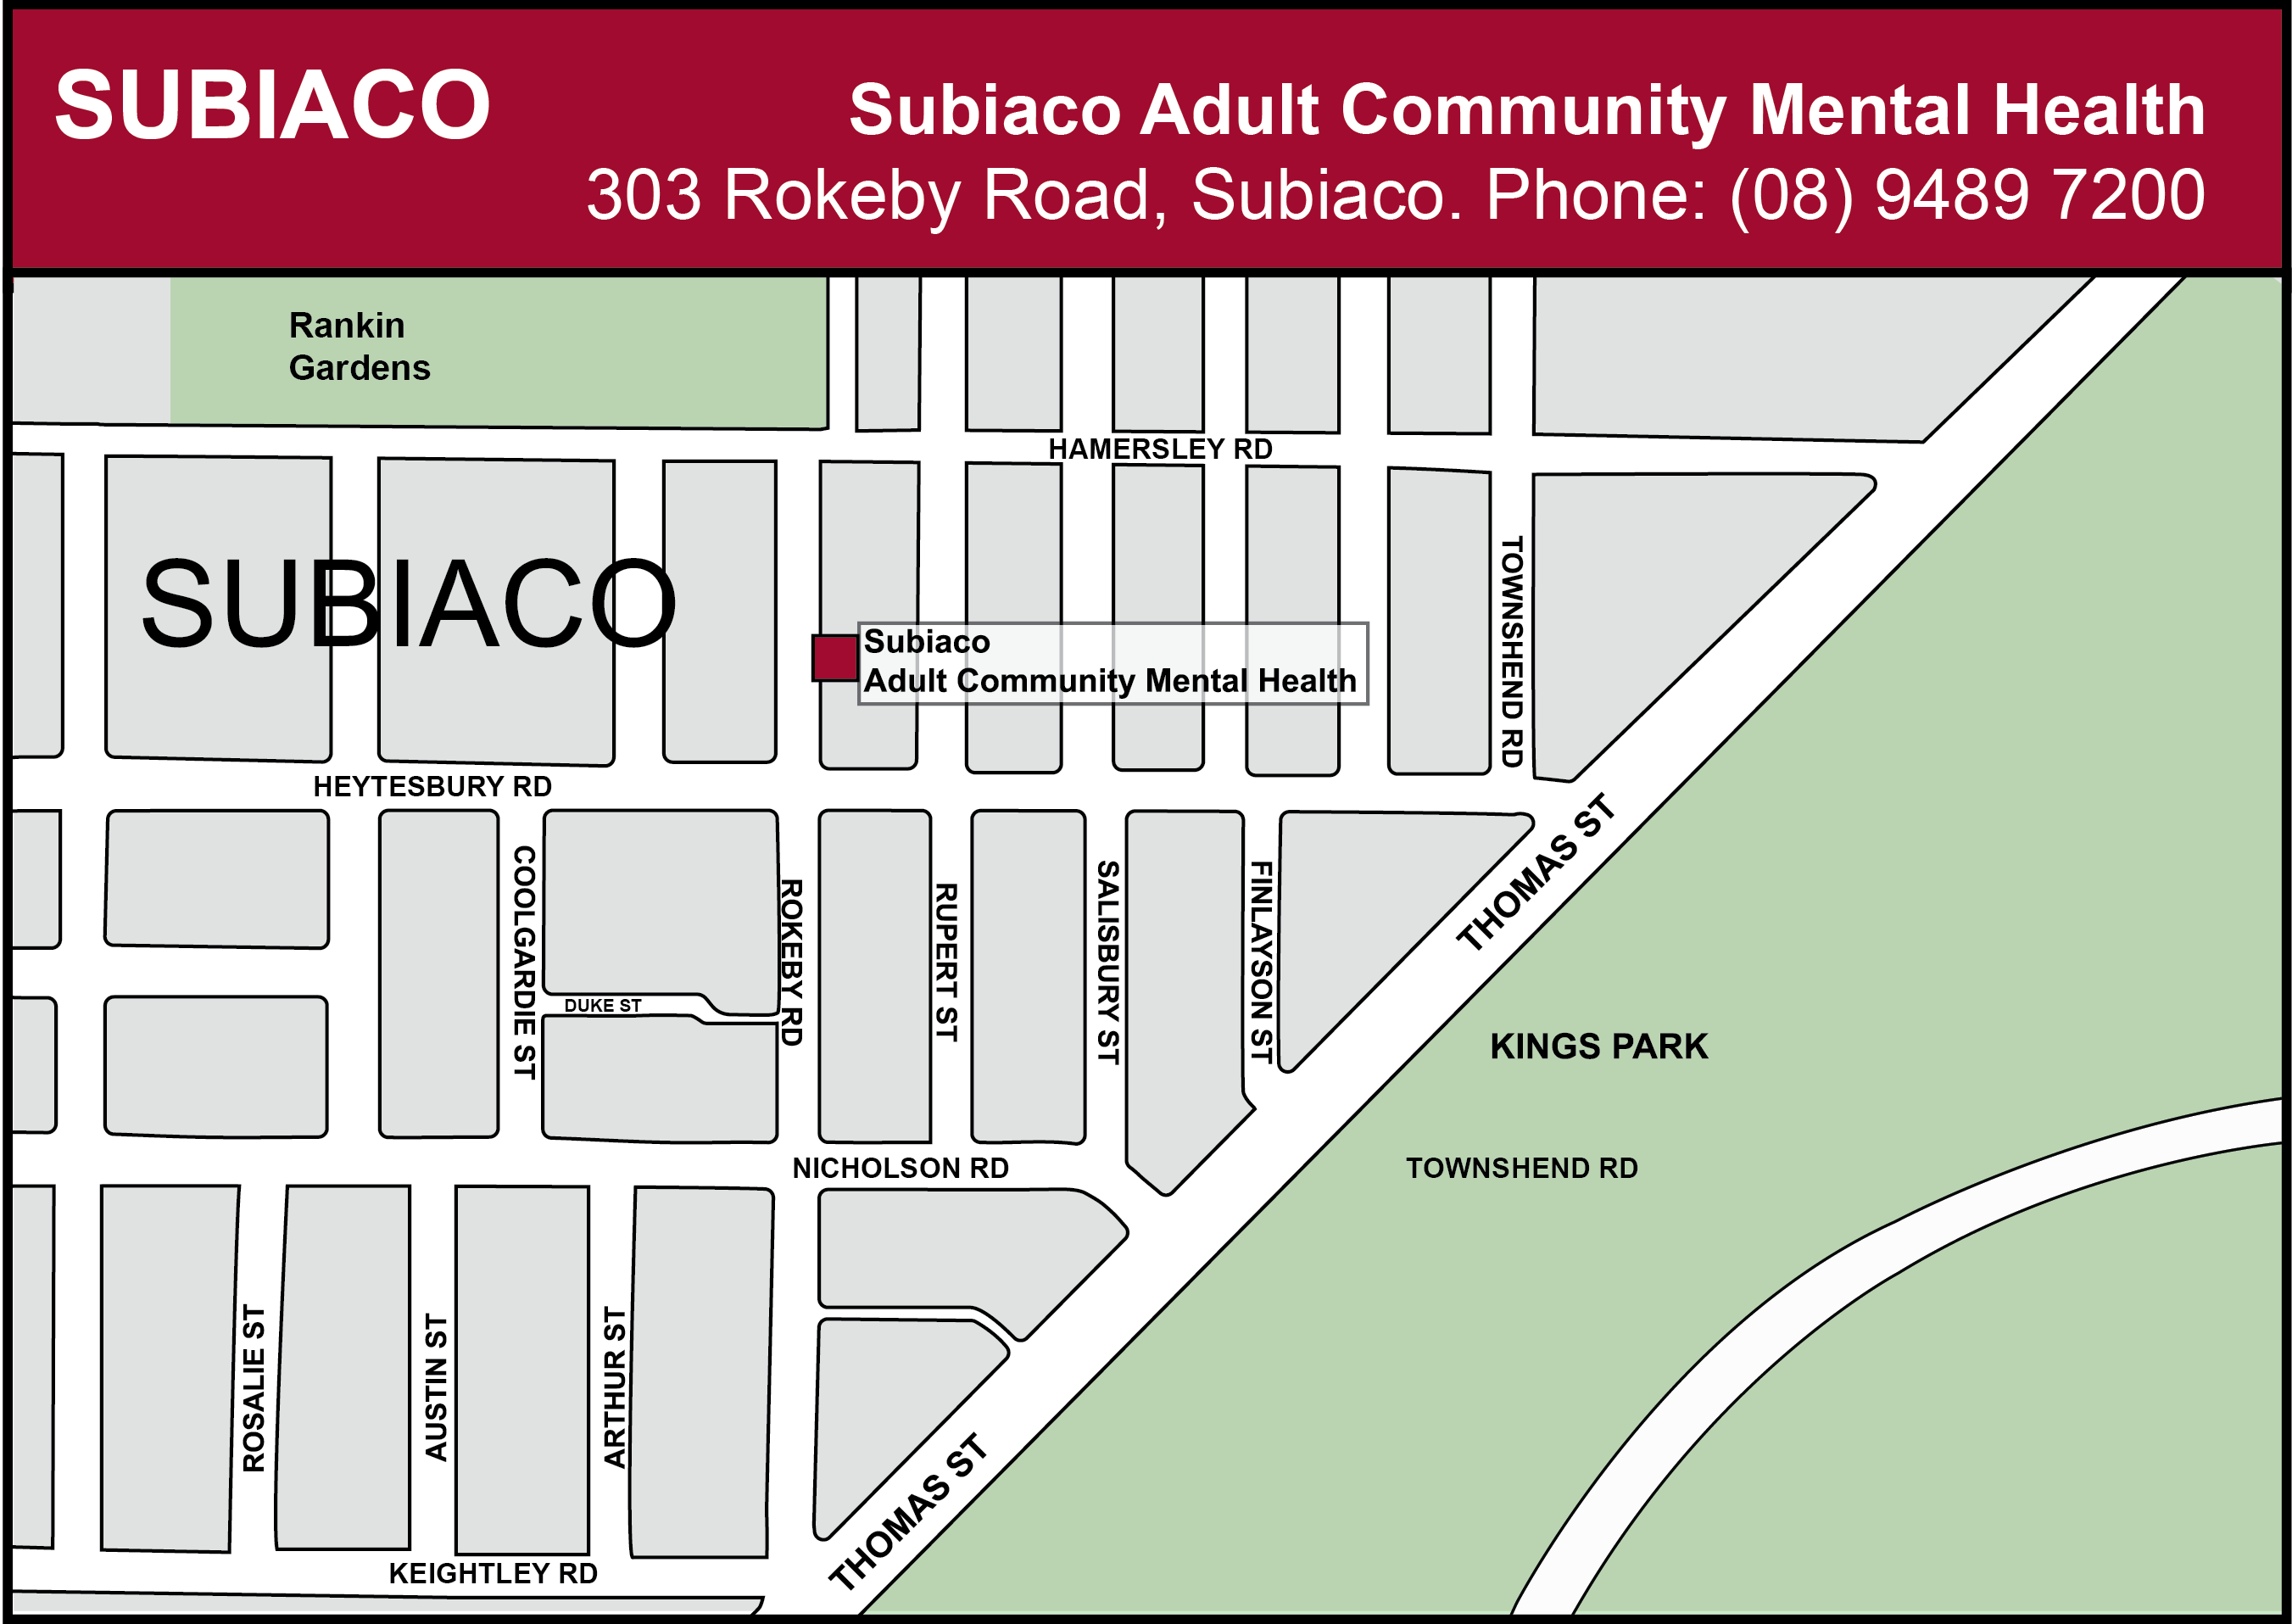 Subiaco Adult Community Mental Health map